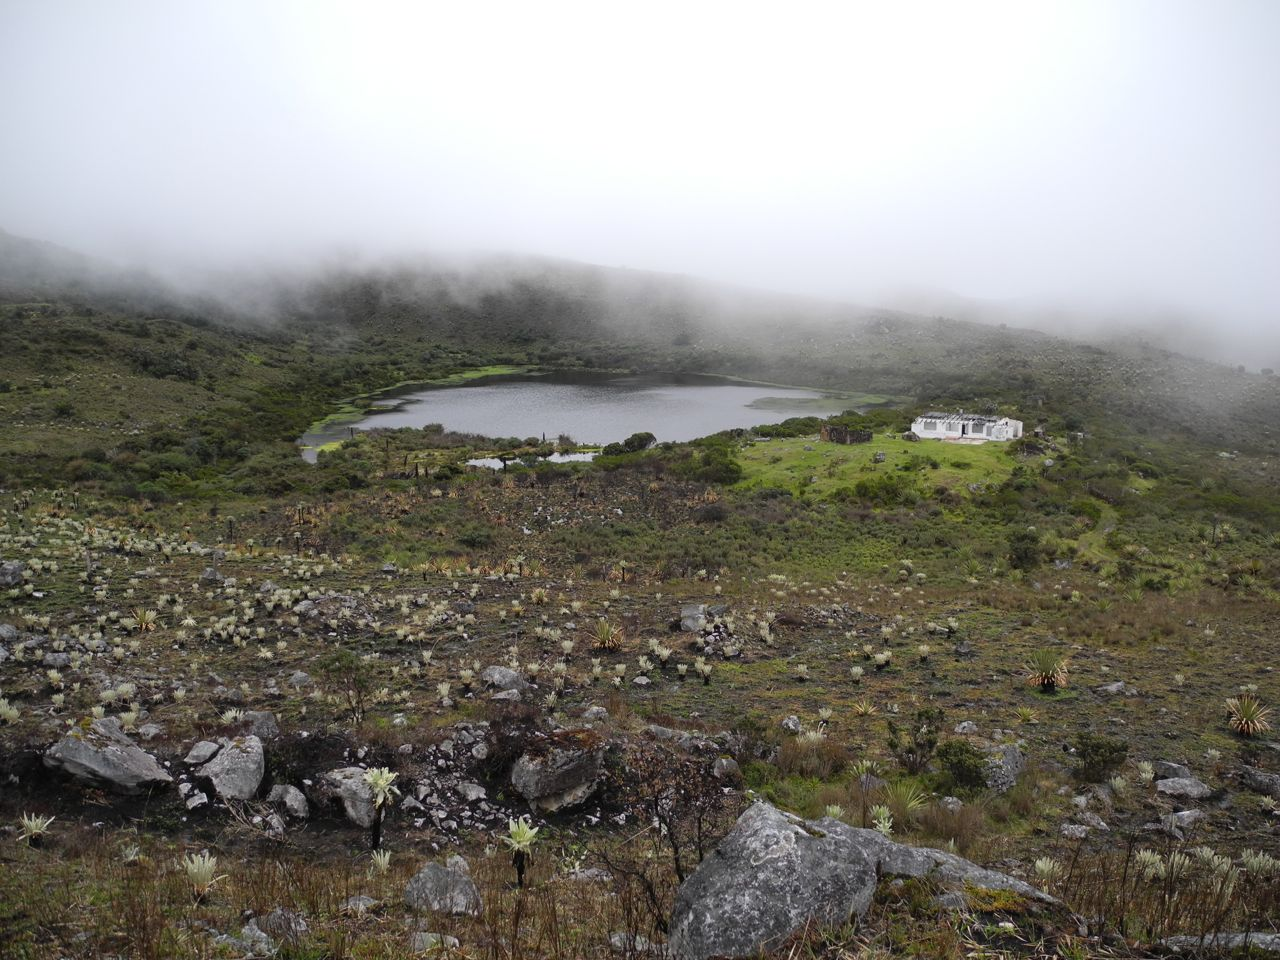 Lagoon and abandoned house at Páramo of Vadohondo